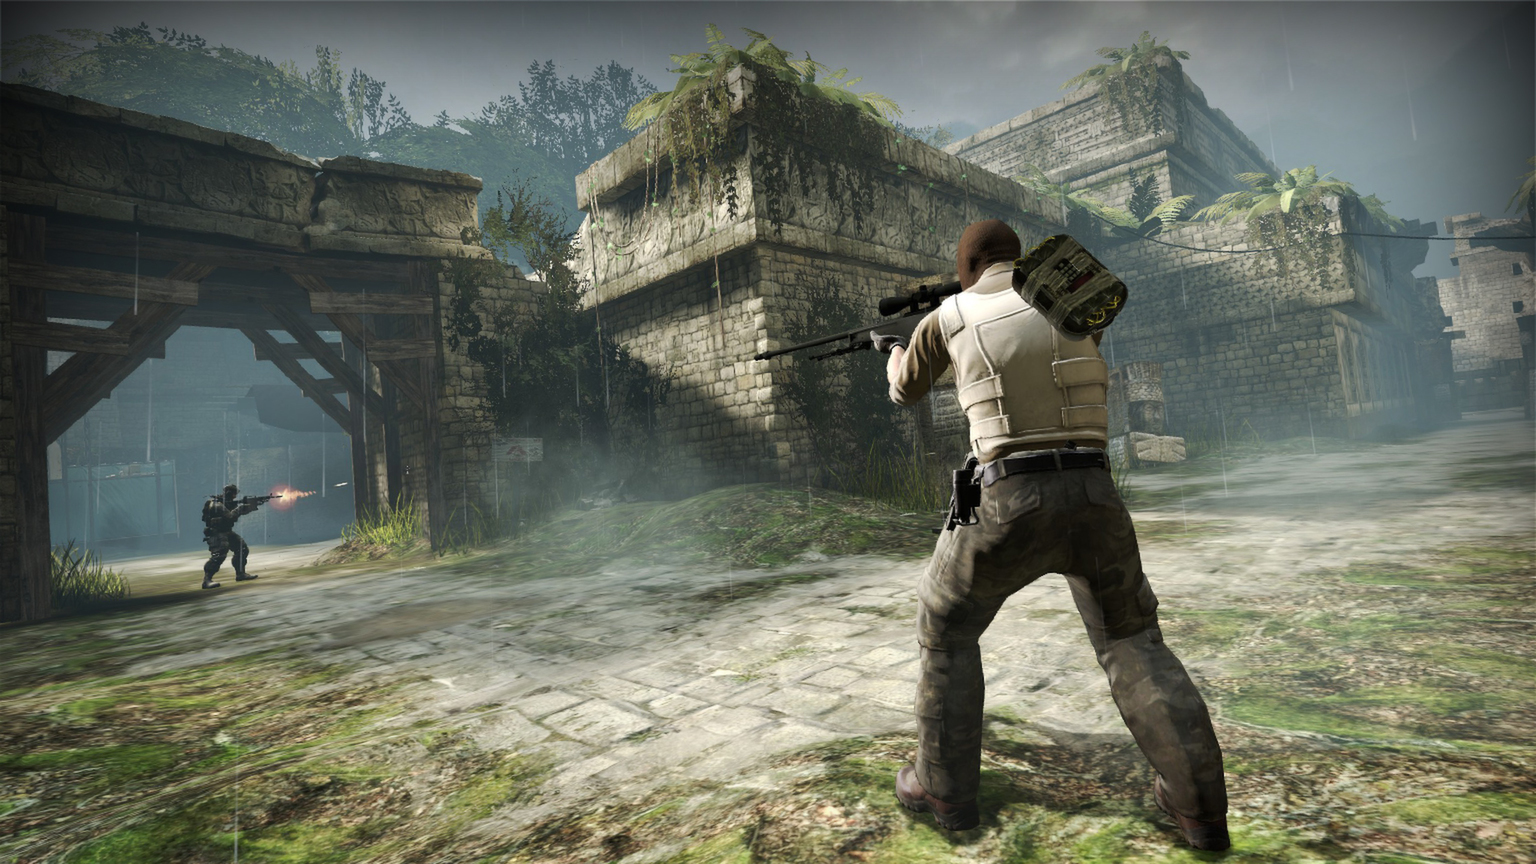 Link Counter-Strike: Global Offensive to Twitch for DLC